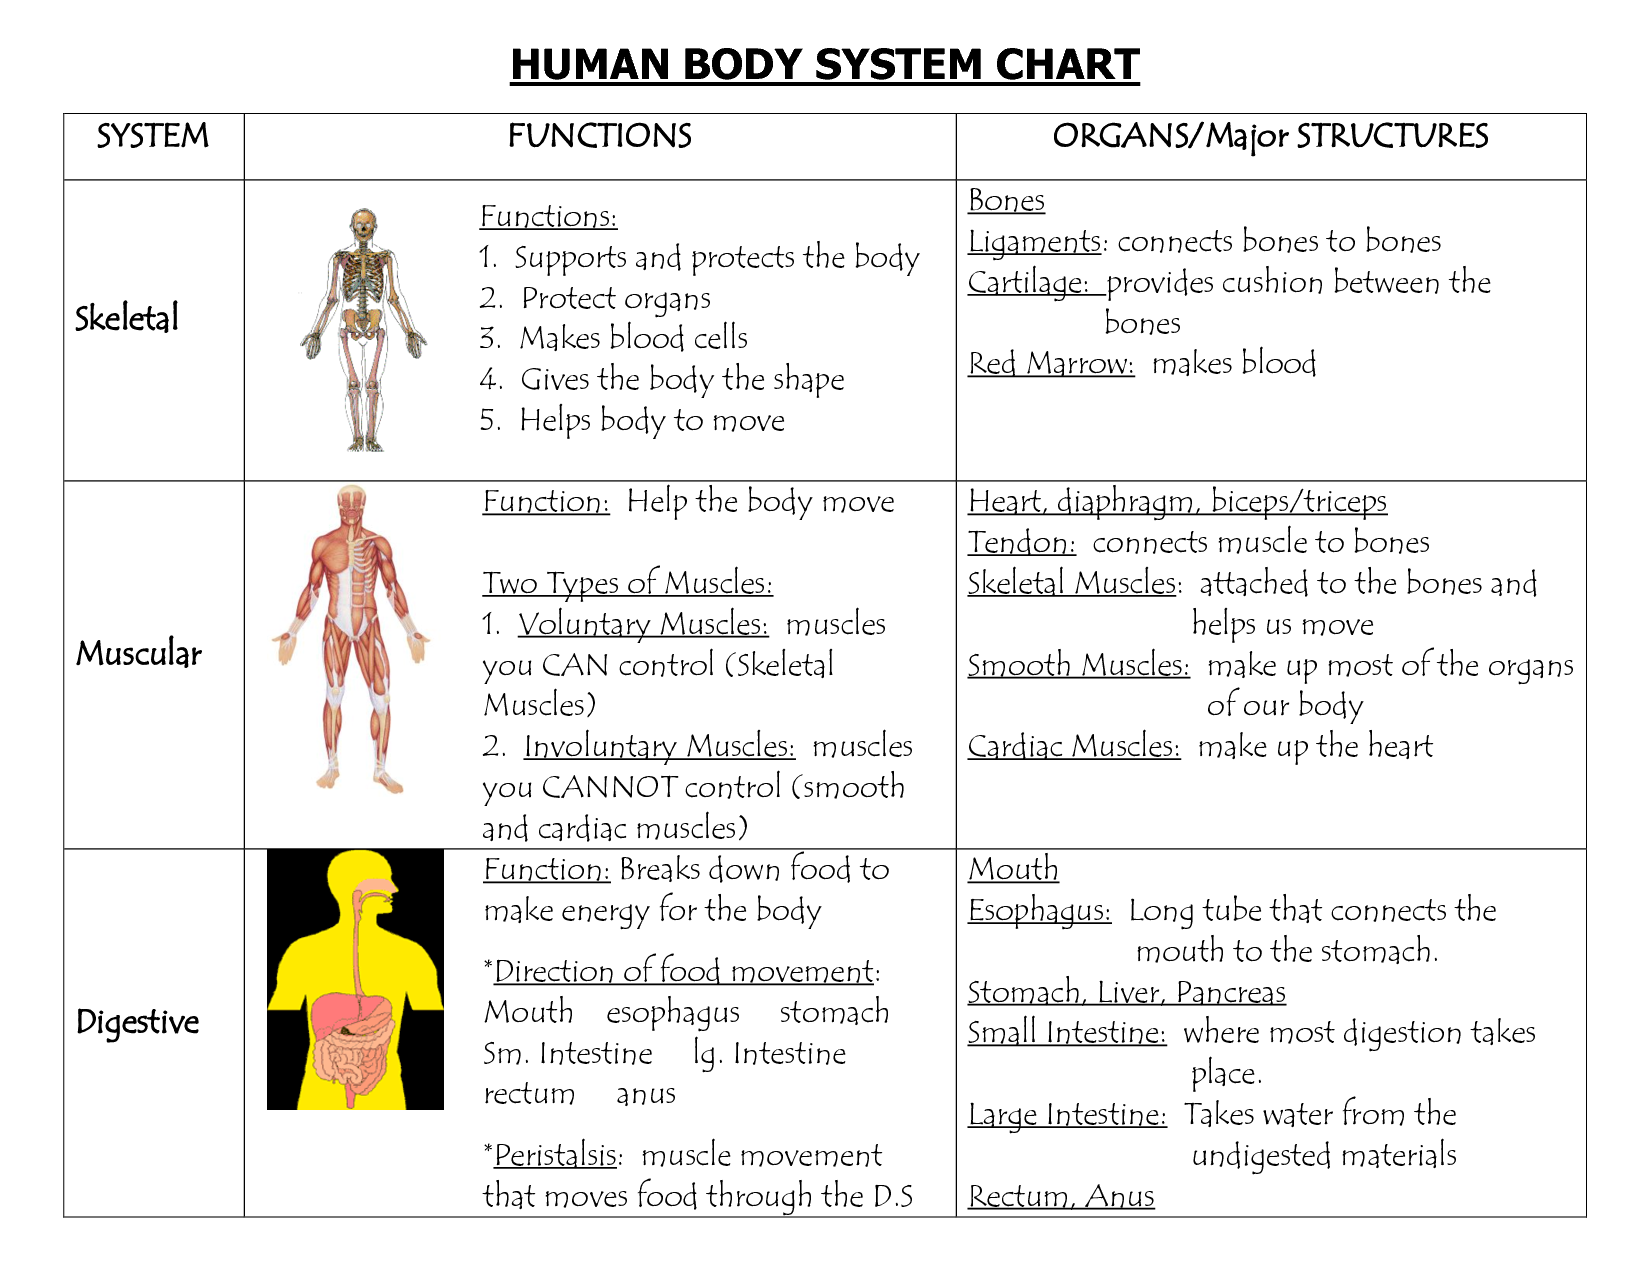 systems of the body human body system chart [ 1650 x 1275 Pixel ]